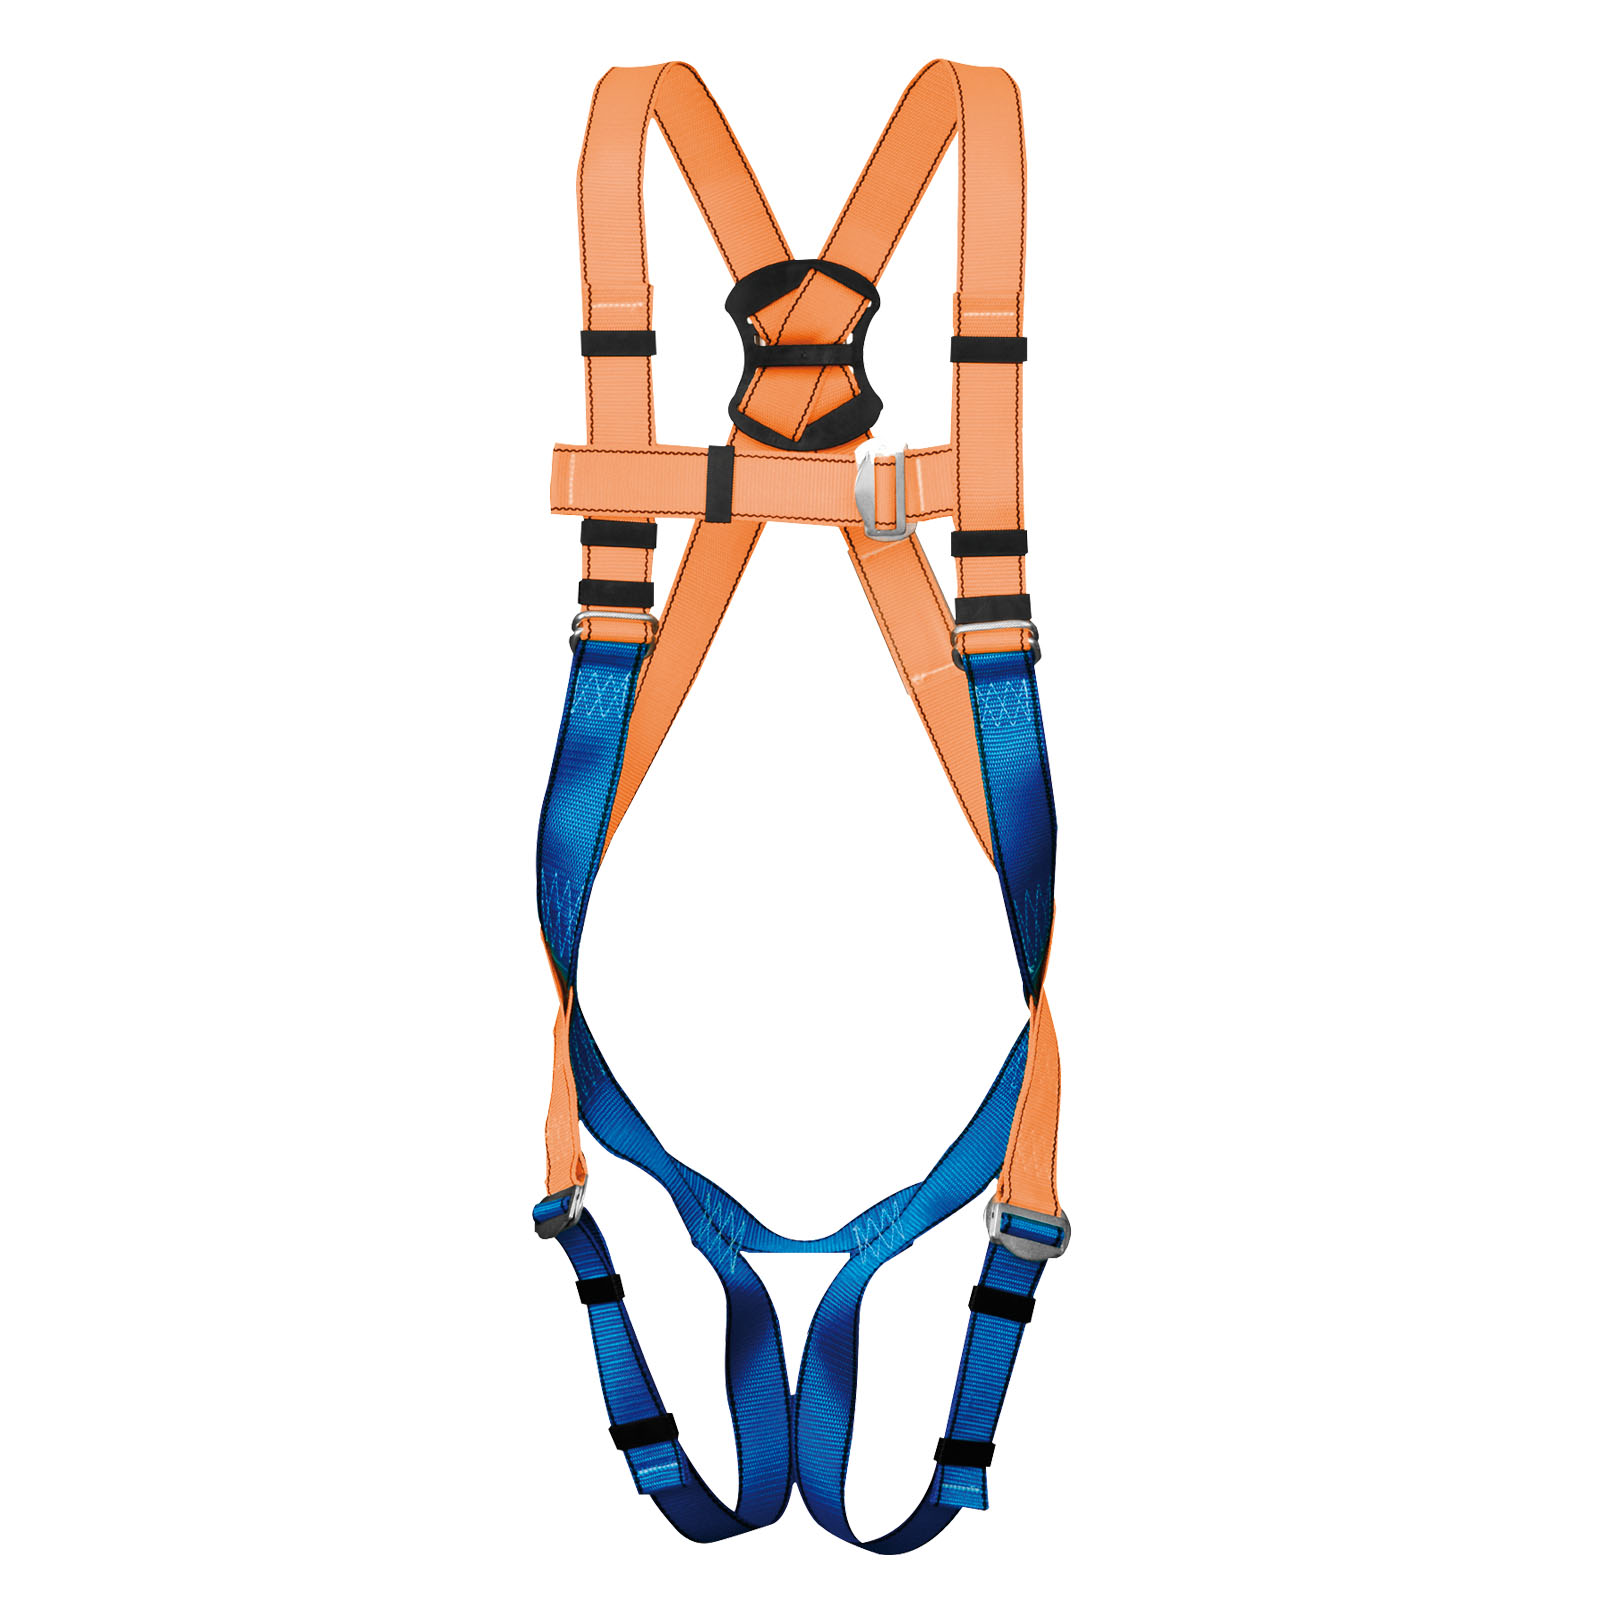 ELLERsafe p-90 Safety Harness M-XL